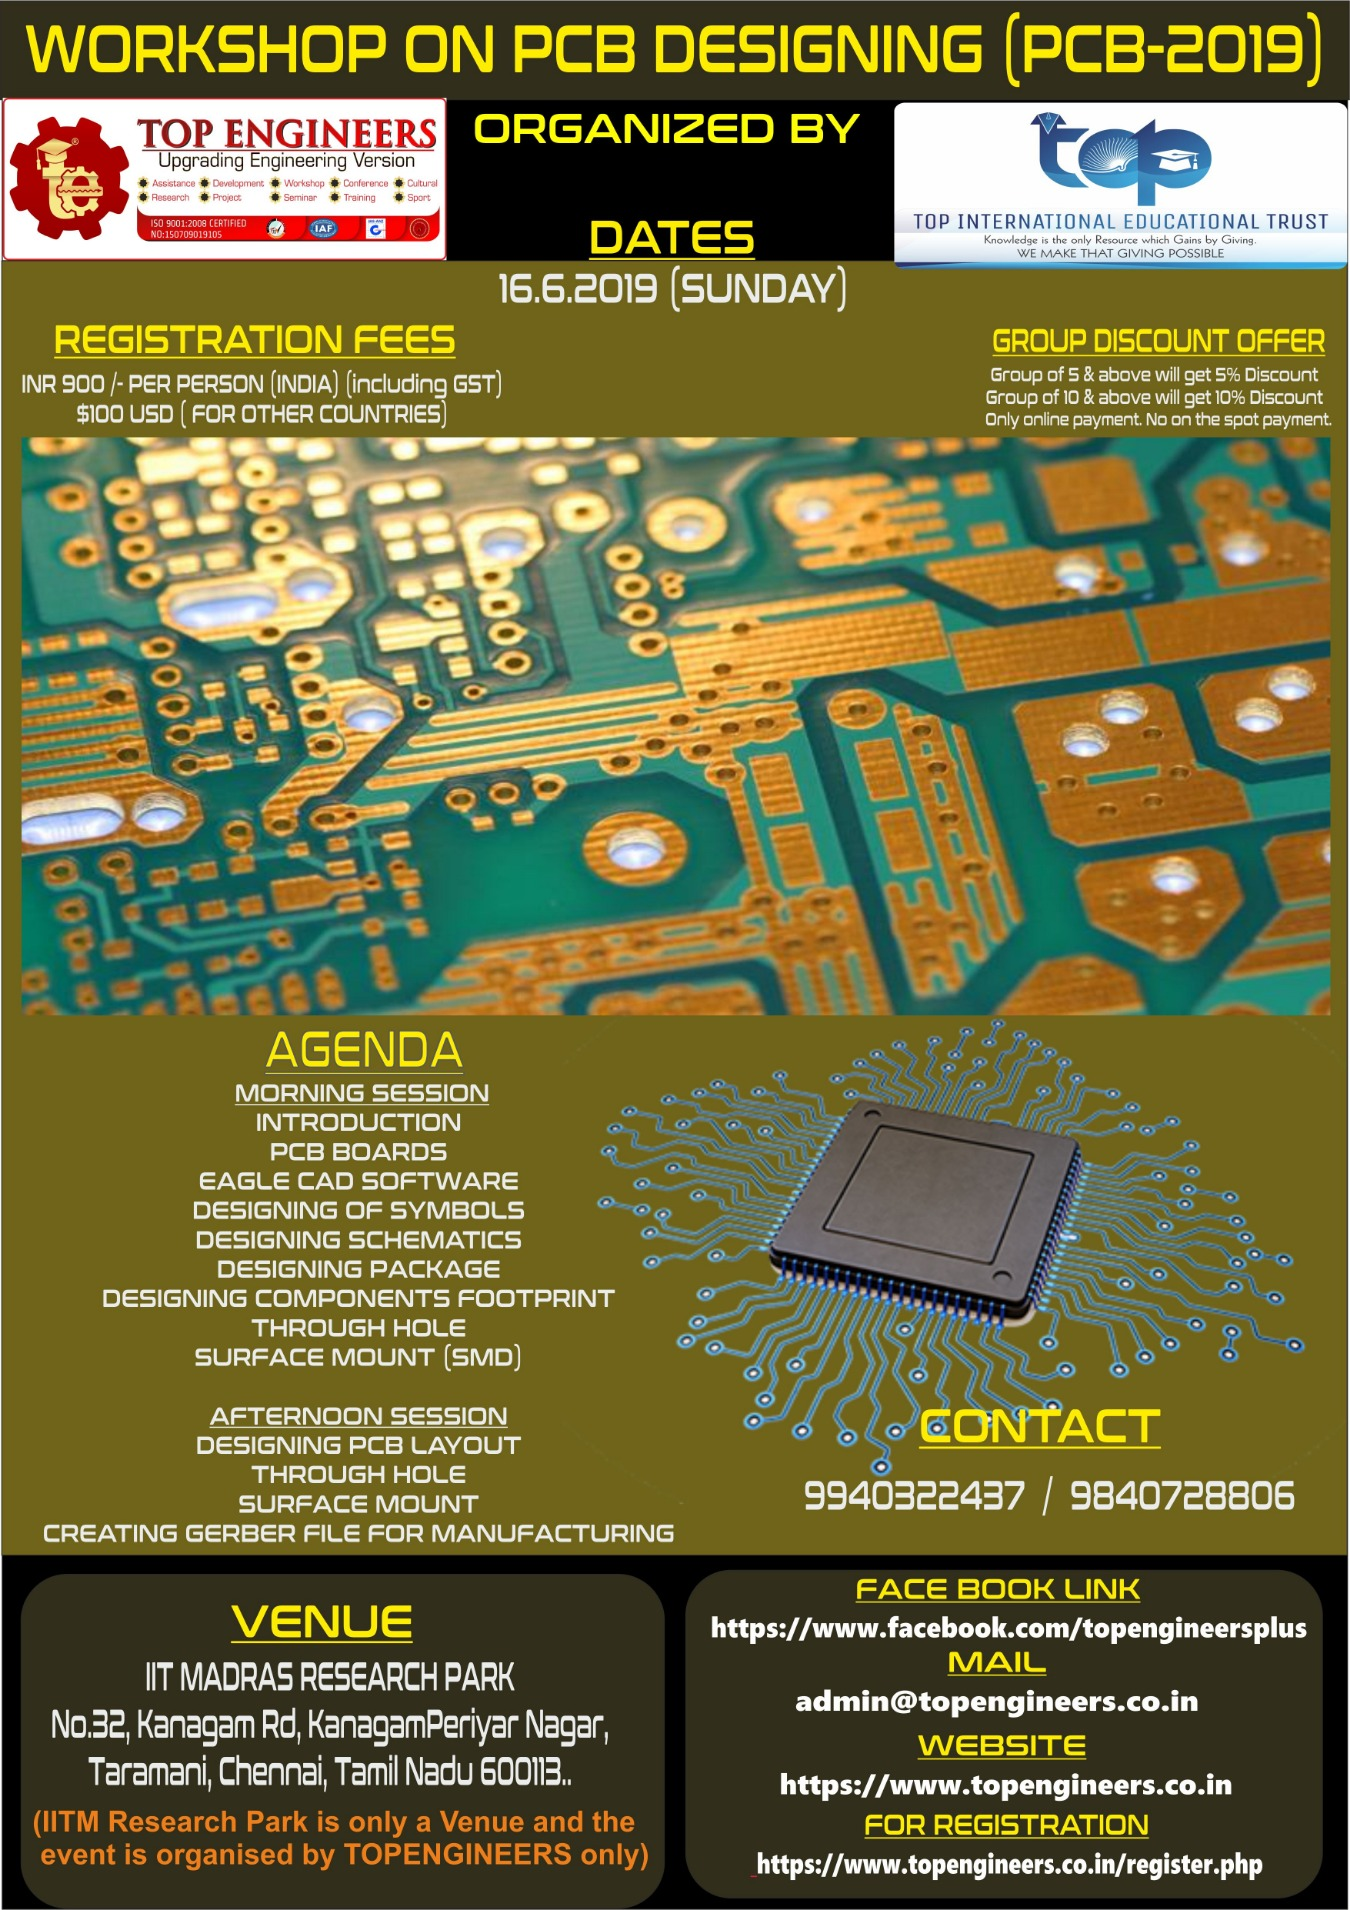 WORKSHOP ON PCB DESIGNING (PCB-2019) Tickets by TOP ENGINEERS, 16 Jun,  2019, Chennai Event